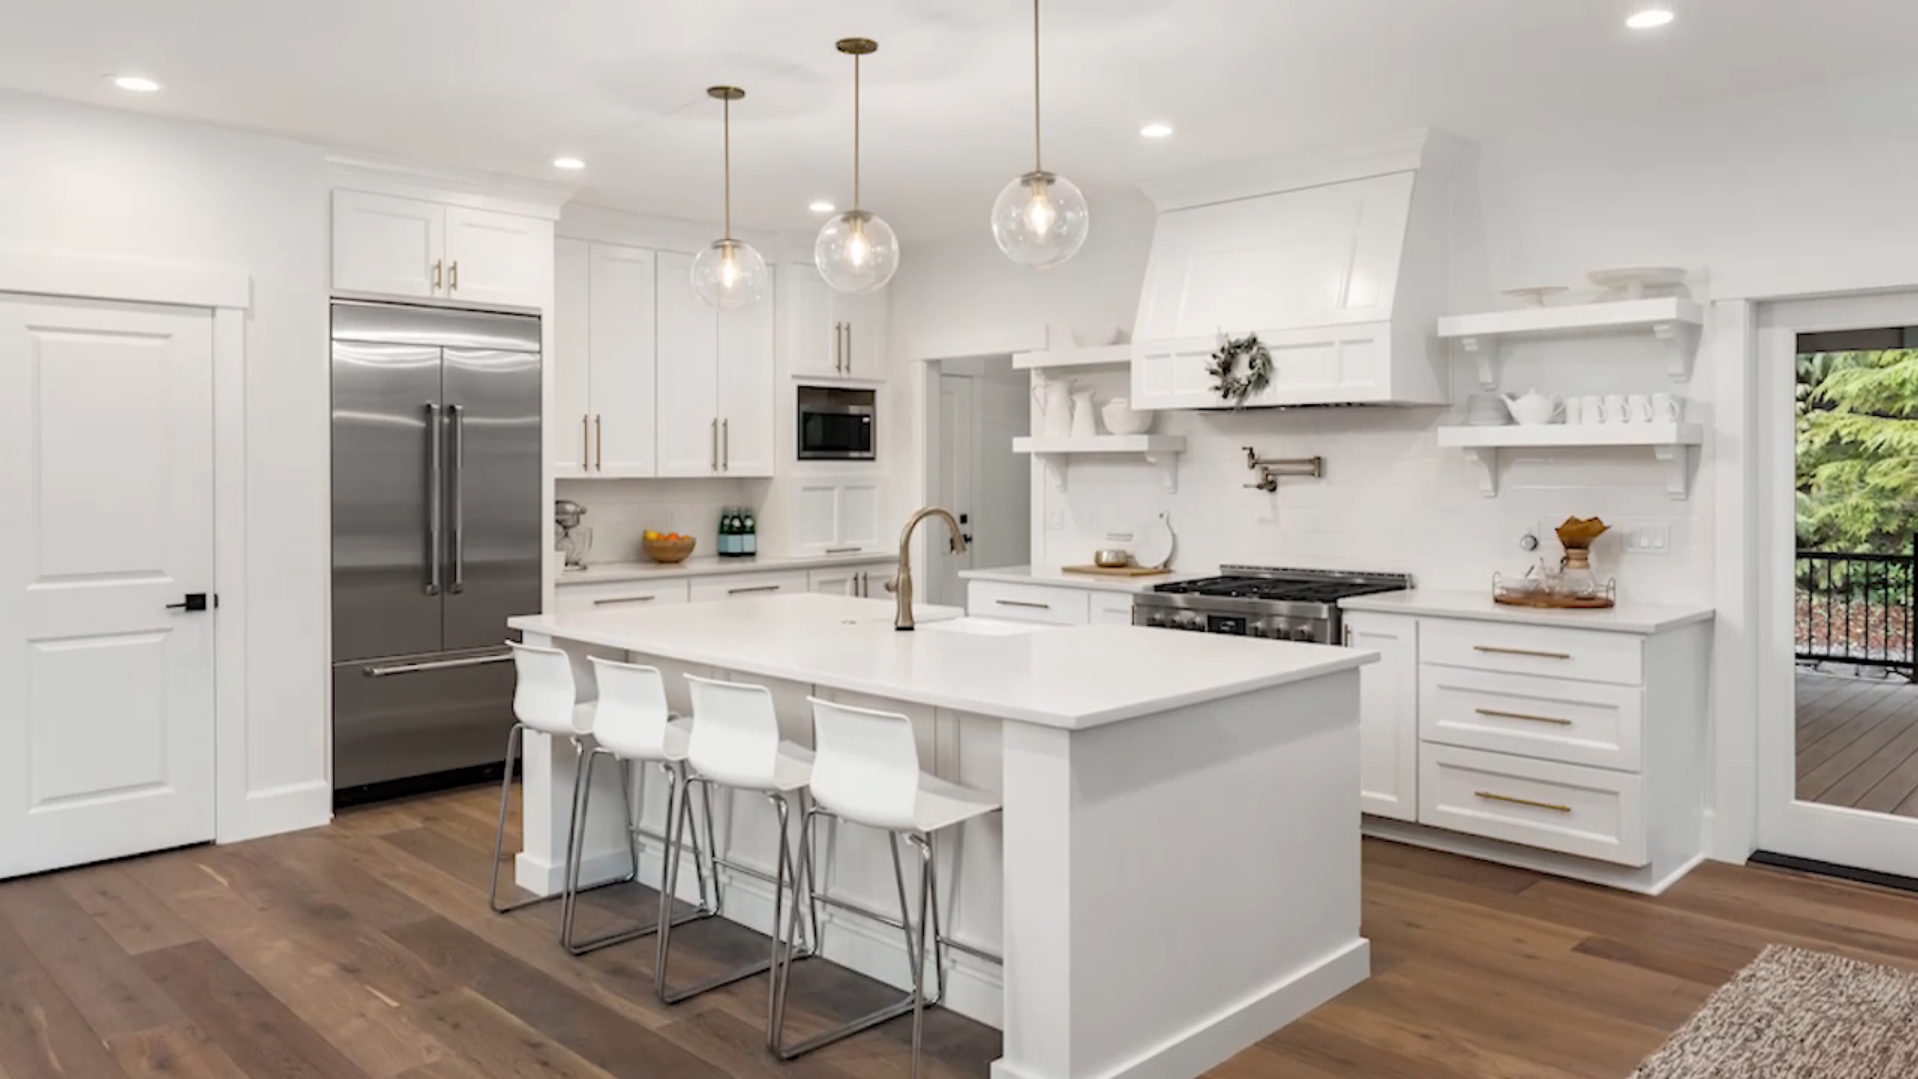 Clean and modern kitchen remodel with all white material